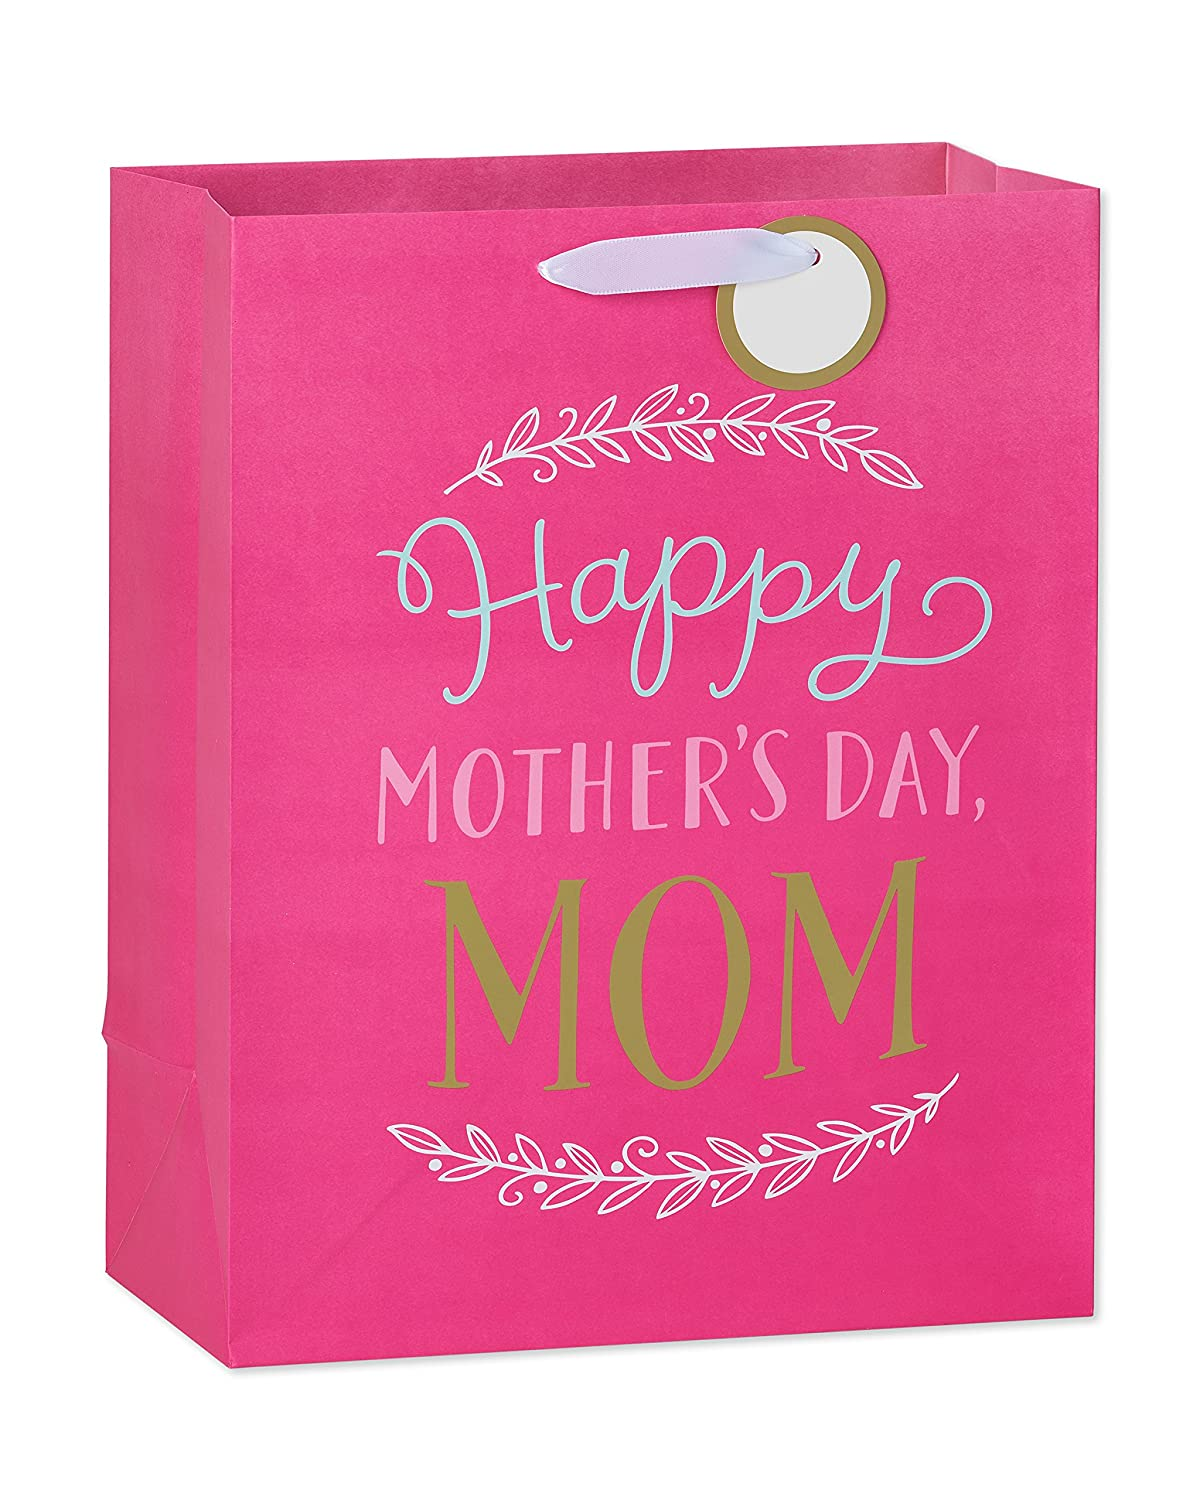 American Greetings Medium Mother's Day Gift Bag, Pink Happy Mother's Day